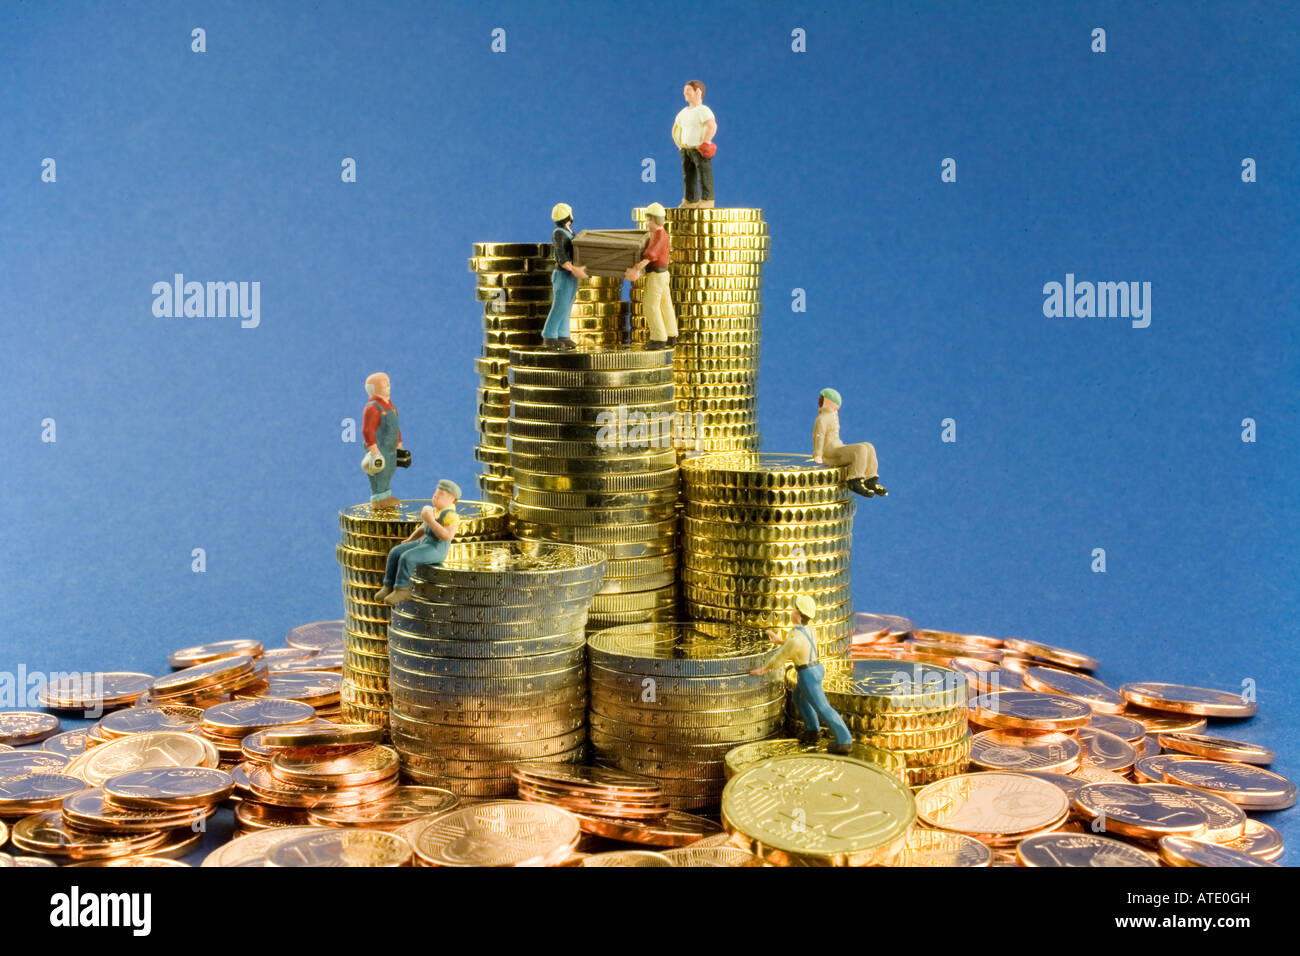 Building worker figures on heaps of money and money piles - Stock Image